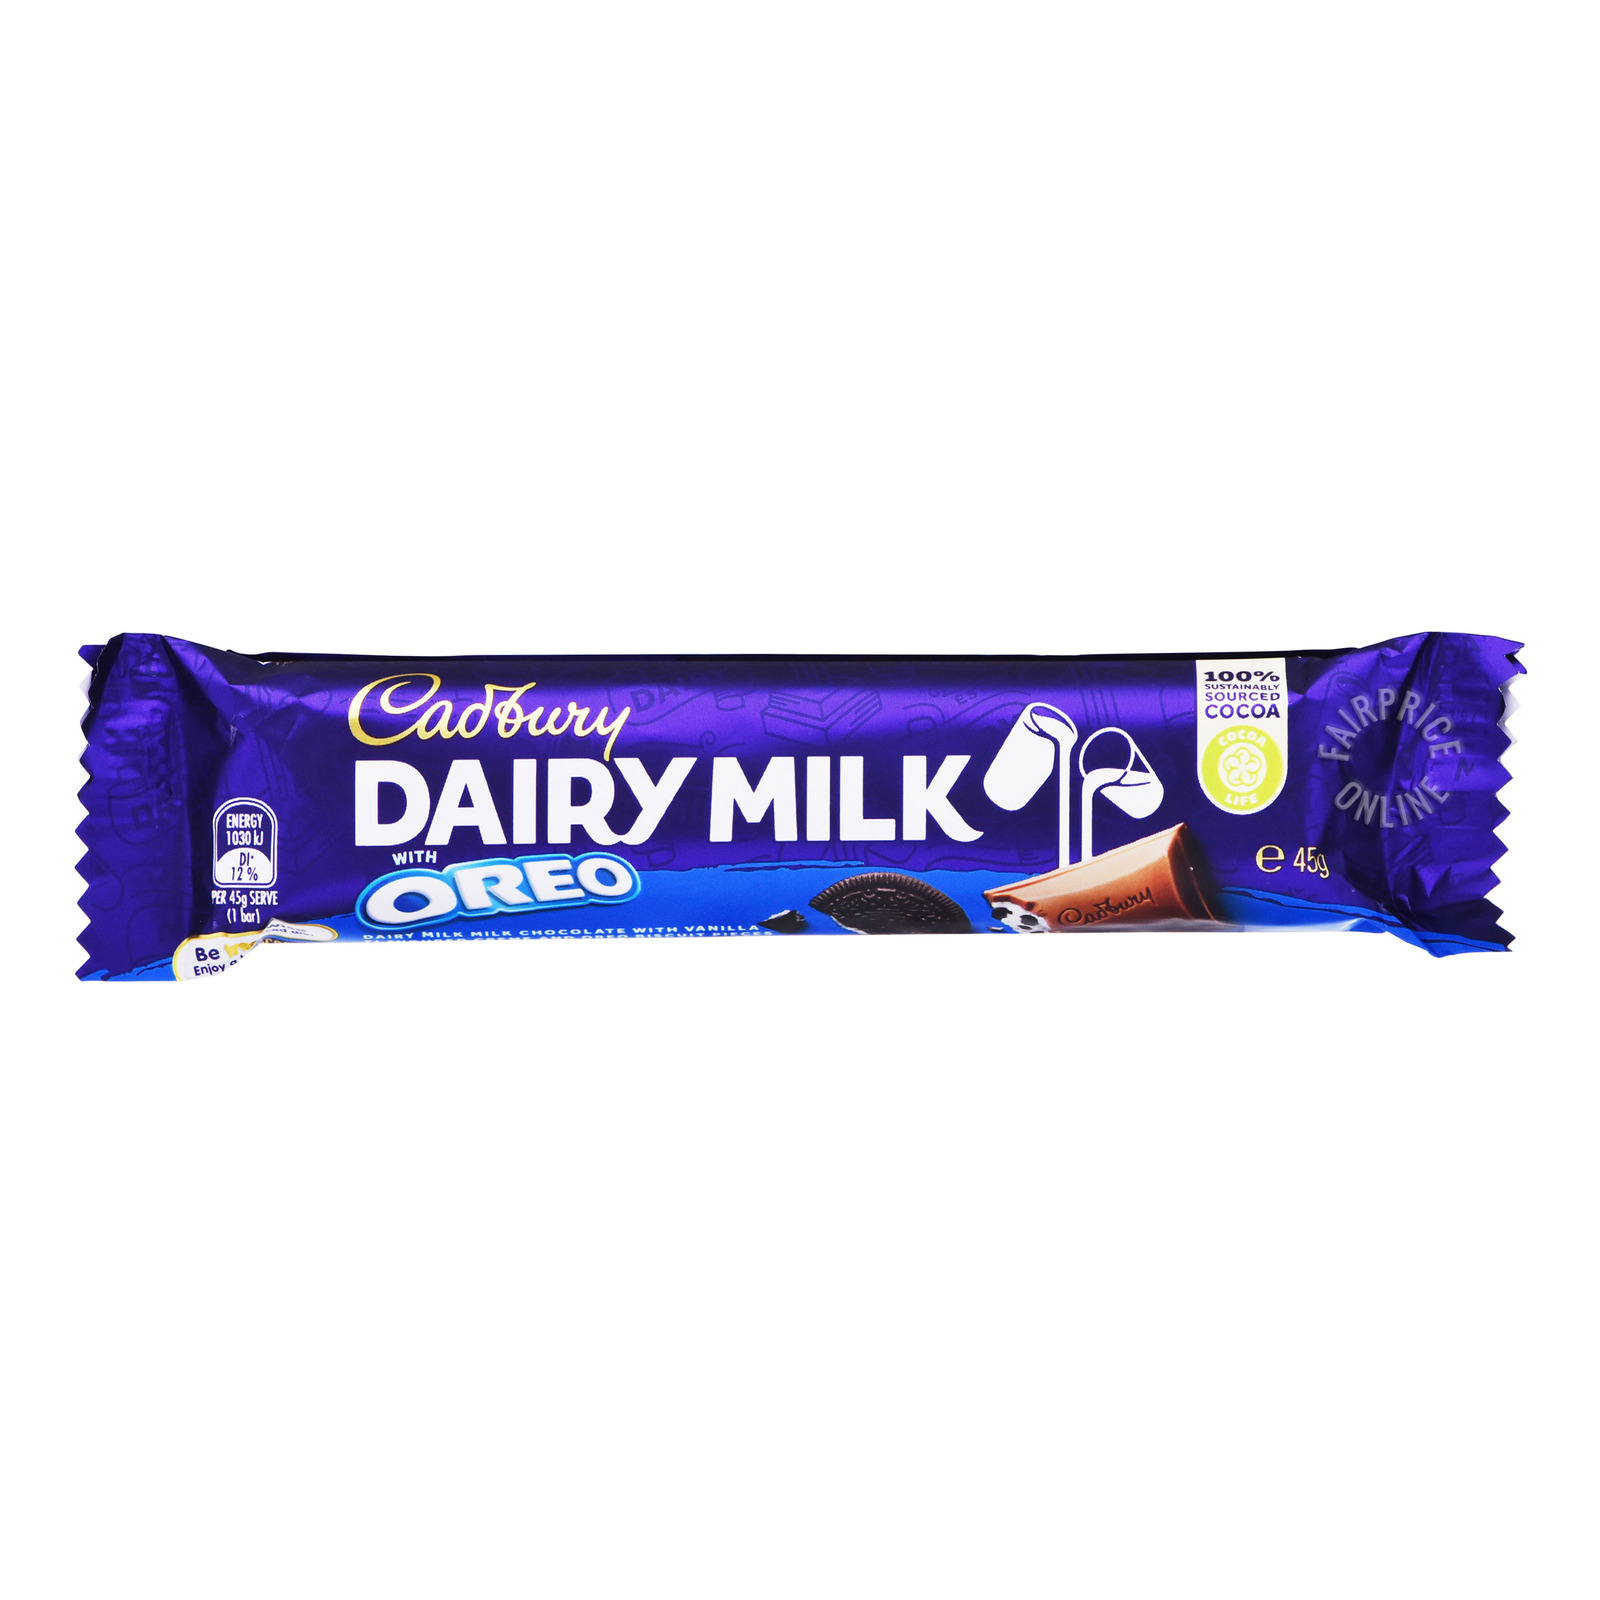 Cadbury Dairy Milk Chocolate Bar - Oreo